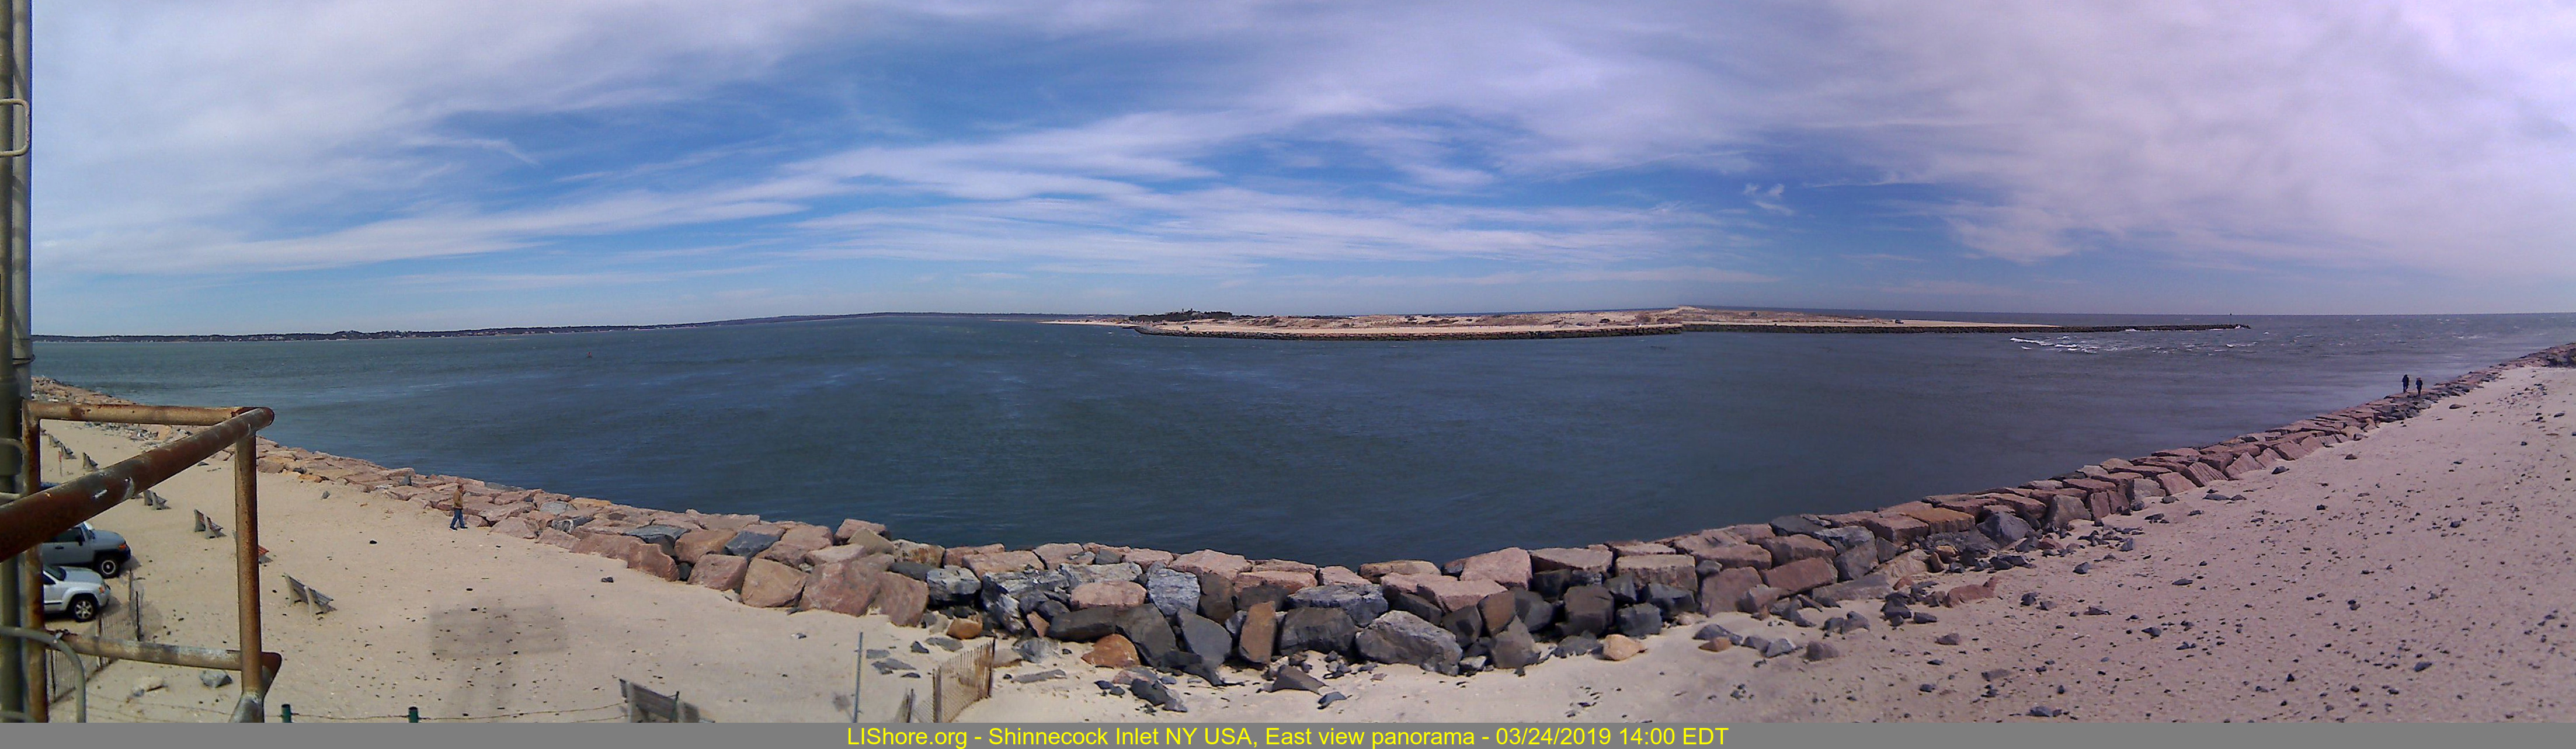 Shinnecock Inlet Panoramic East, generated every 15 minutes